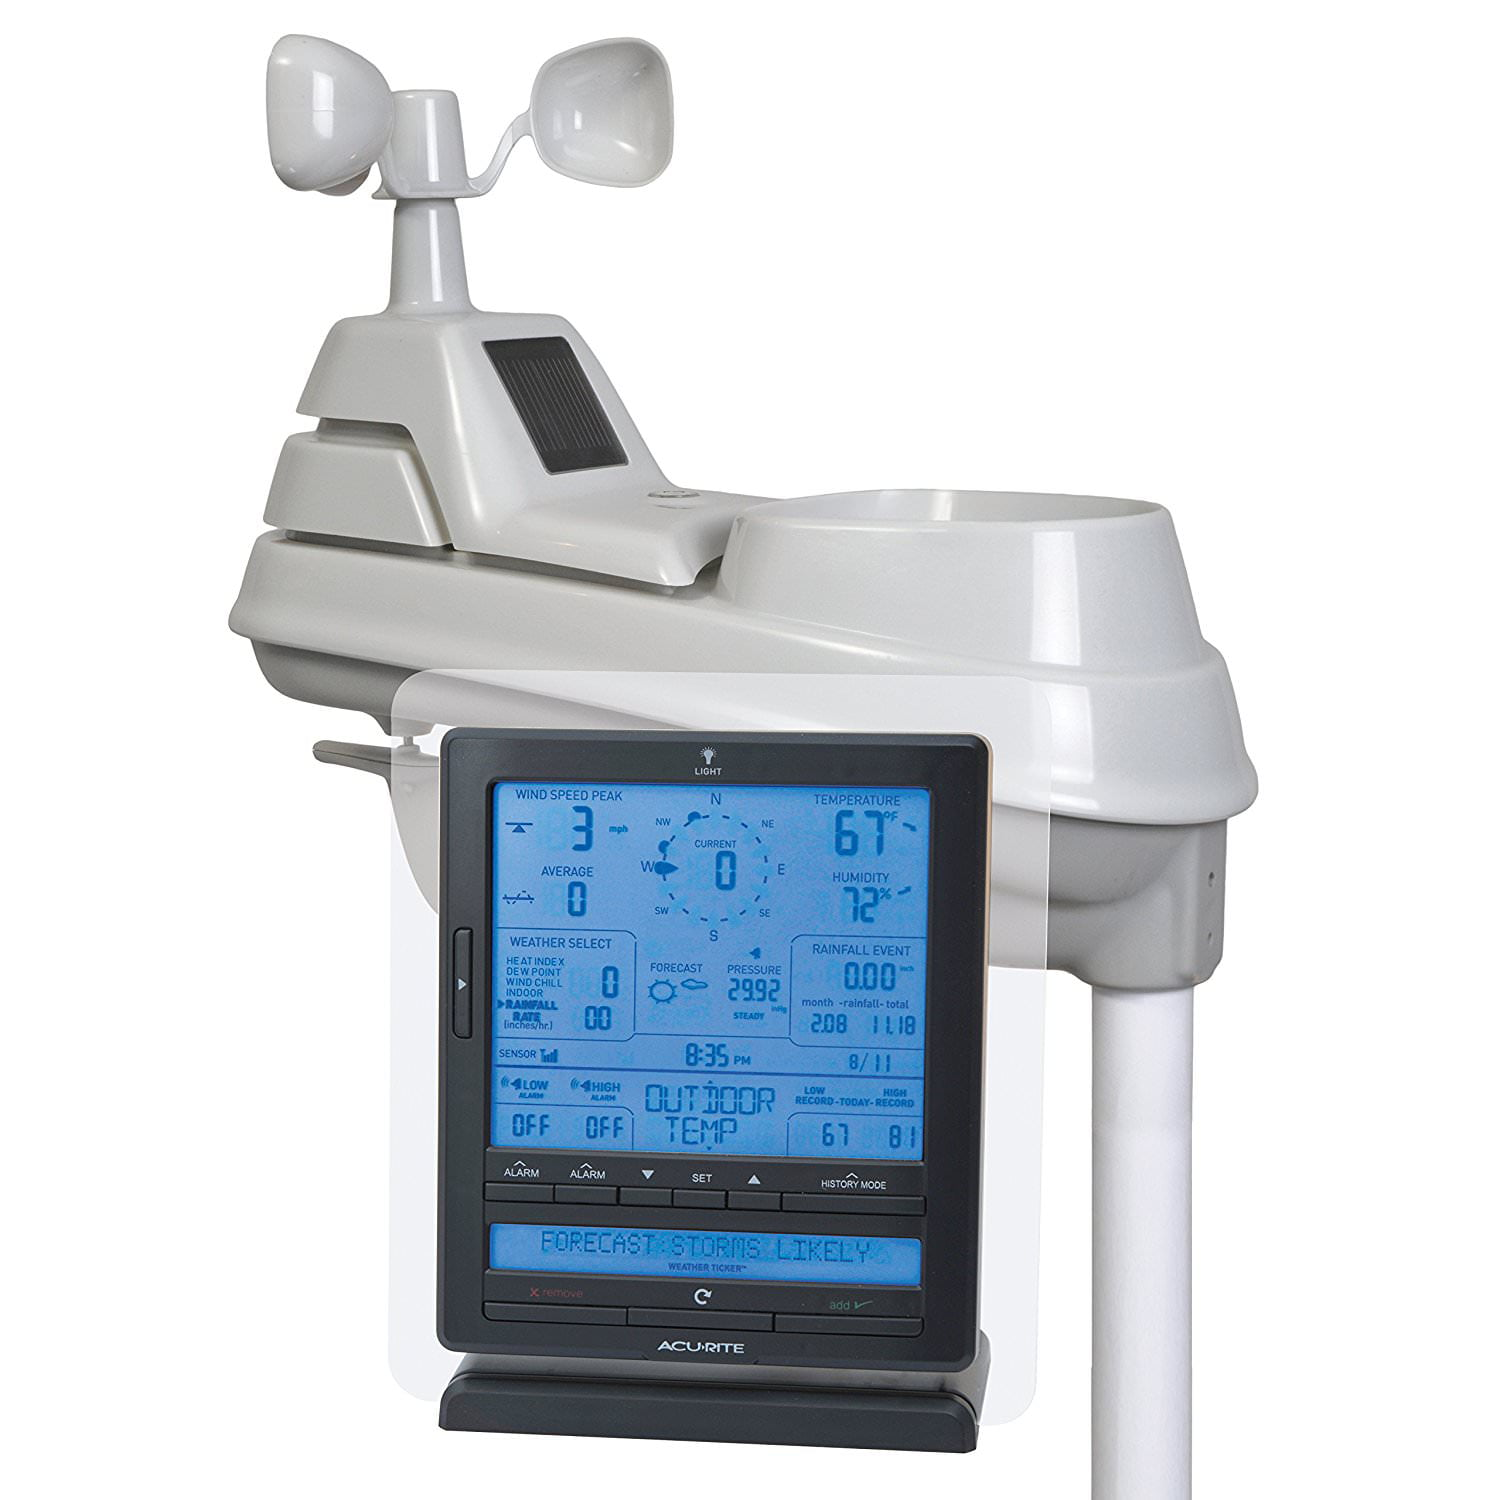 AcuRite 01015 Pro 5-in-1 Weather Station with Wind and Rain + Weather Ticker by Chaney Instrument Co